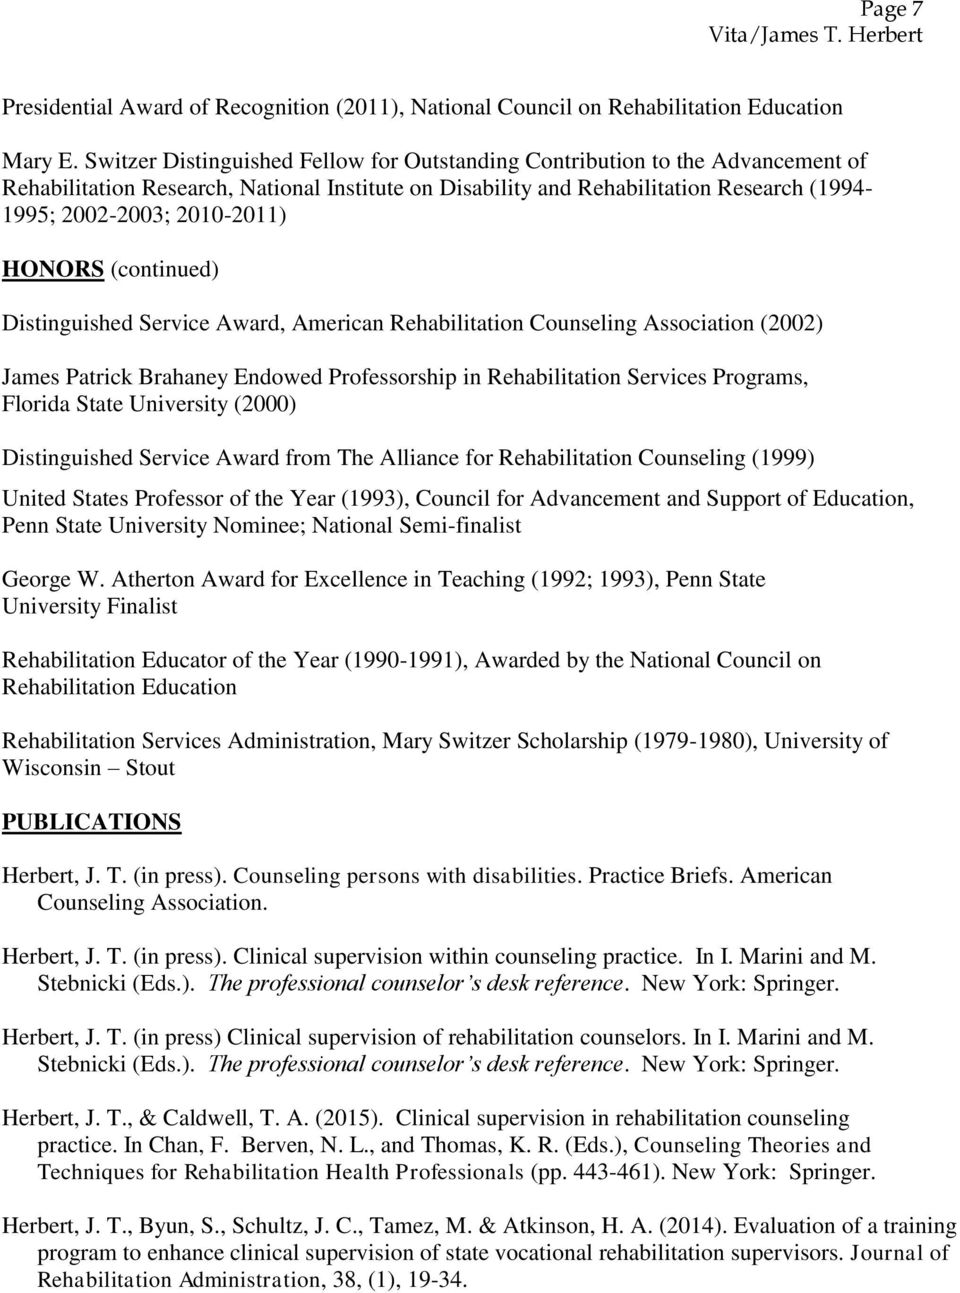 HONORS (continued) Distinguished Service Award, American Rehabilitation Counseling Association (2002) James Patrick Brahaney Endowed Professorship in Rehabilitation Services Programs, Florida State